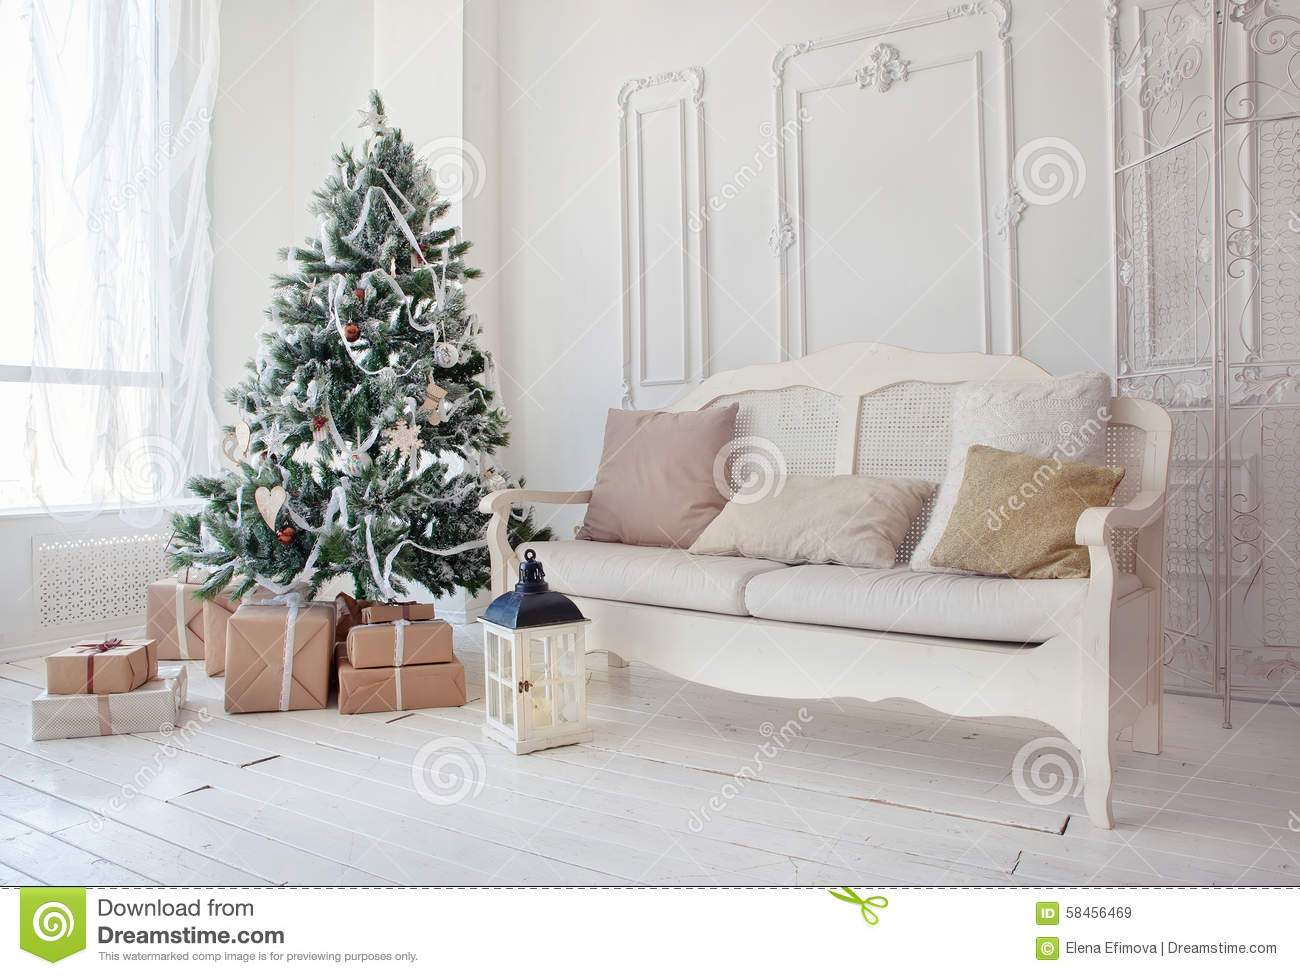 Christmas Tree With Presents Underneath In Living Room Stock Image ...